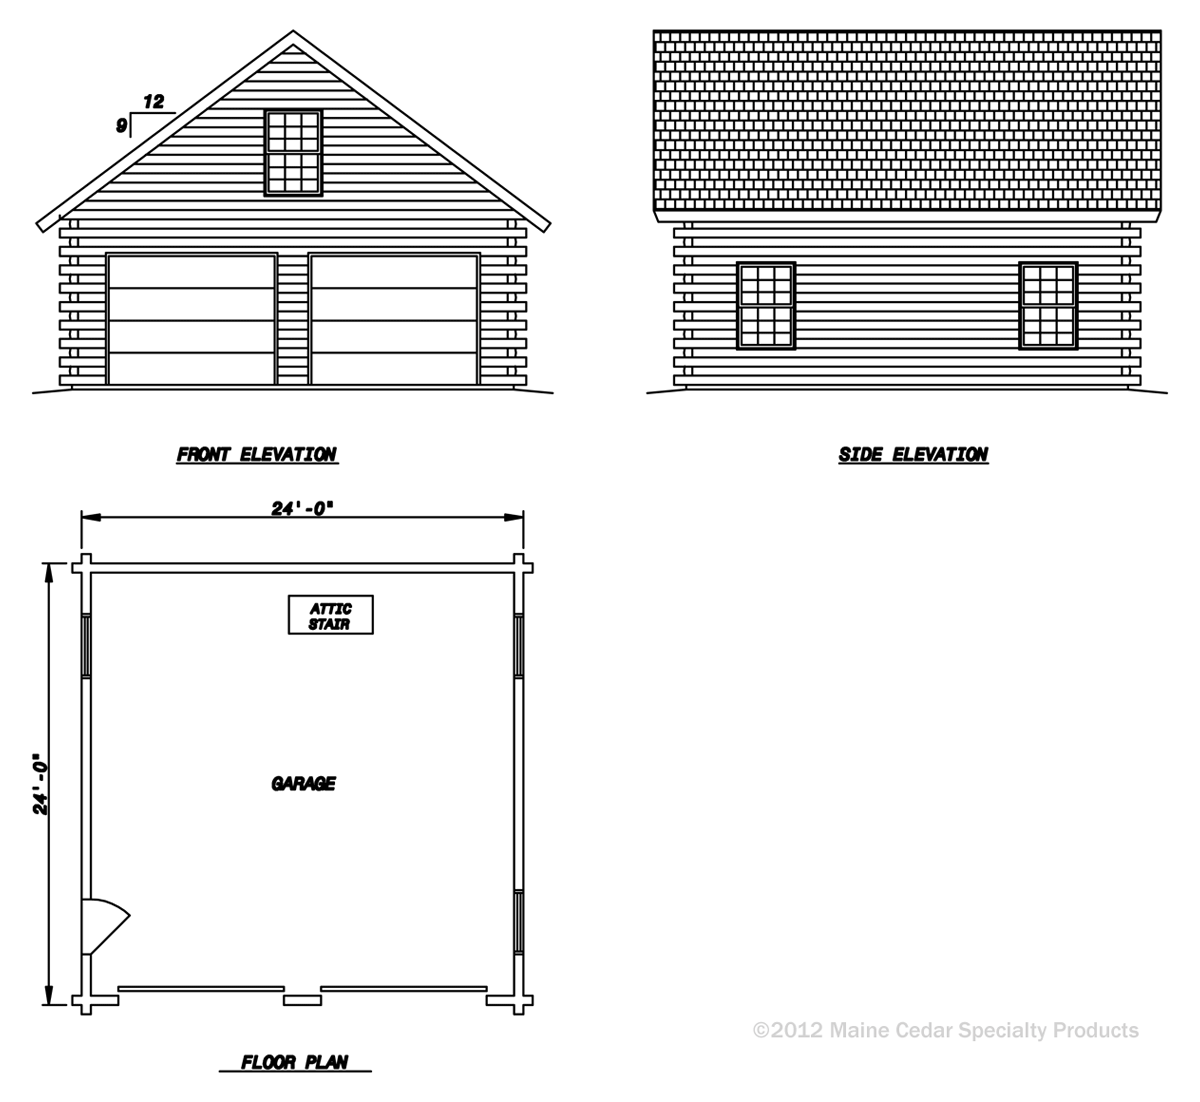 Beautiful Plans Garage Double Images Joshkrajcik joshkrajcikus – Building Plans For A Garage